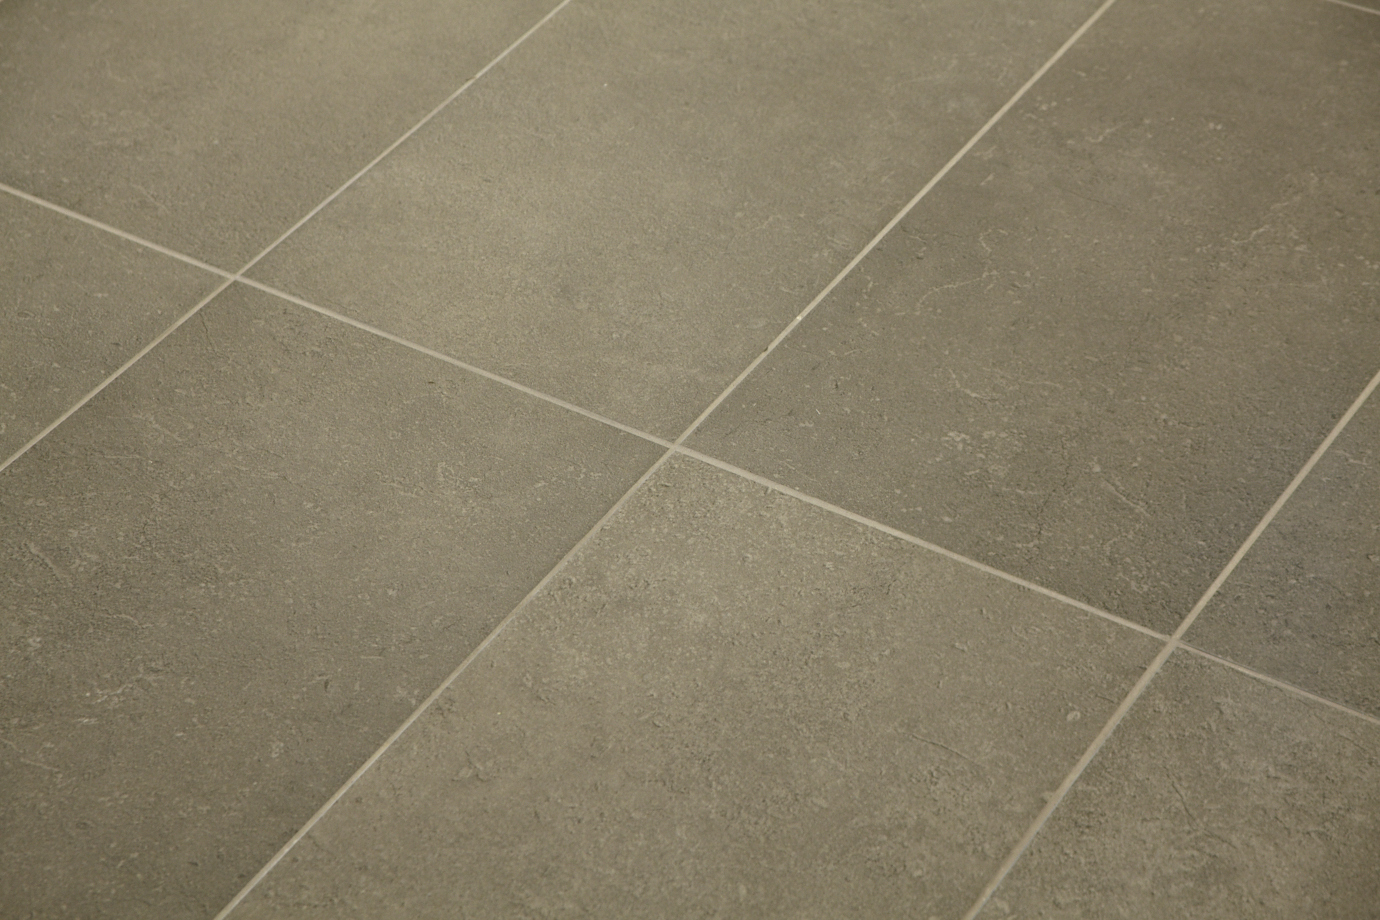 Specifying The Right Grout For The Job Construction Specifier